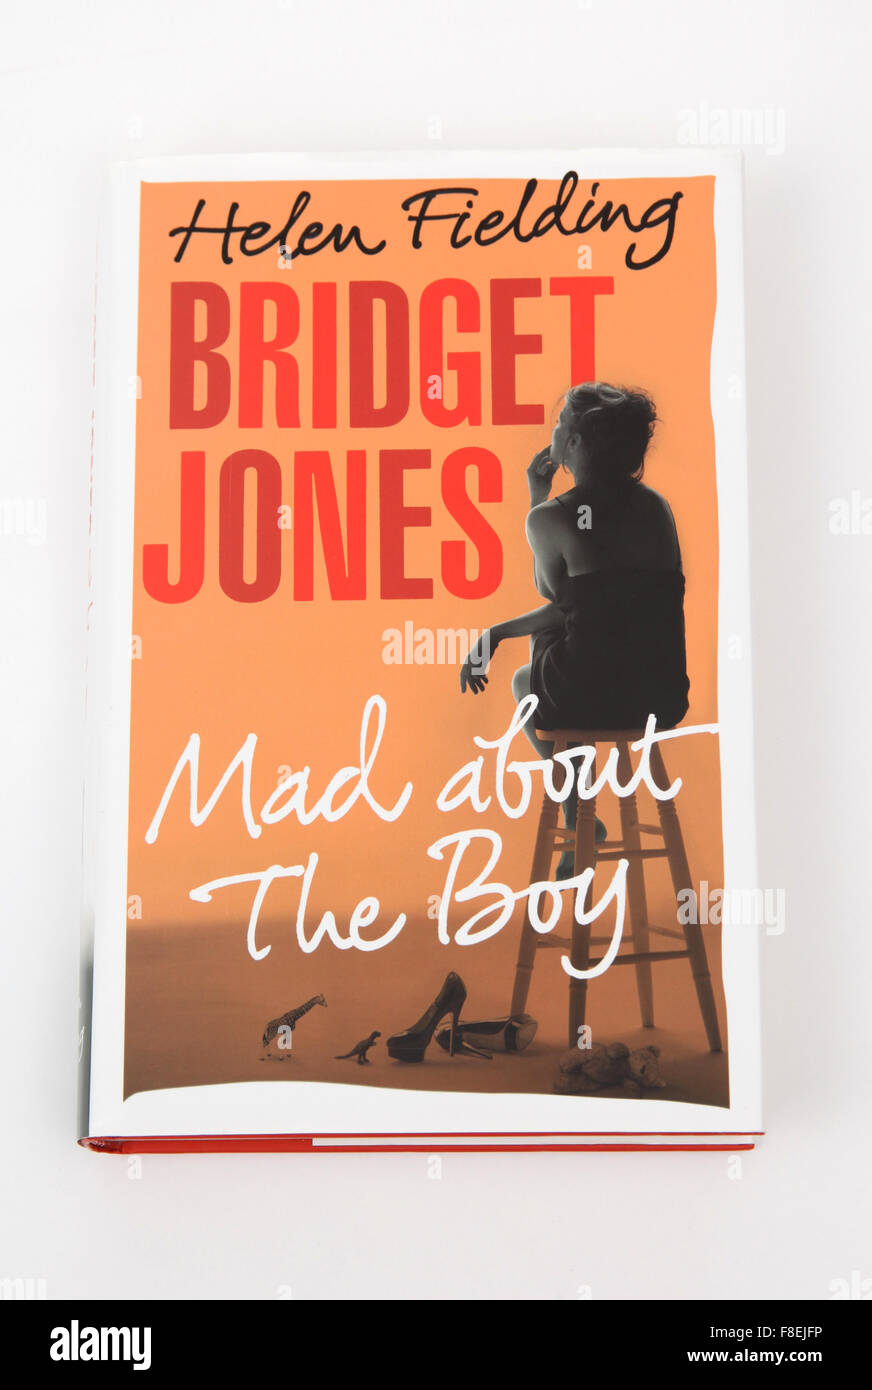 The book Bridget Jones - Mad about The Boy - by Helen Fielding. - Stock Image